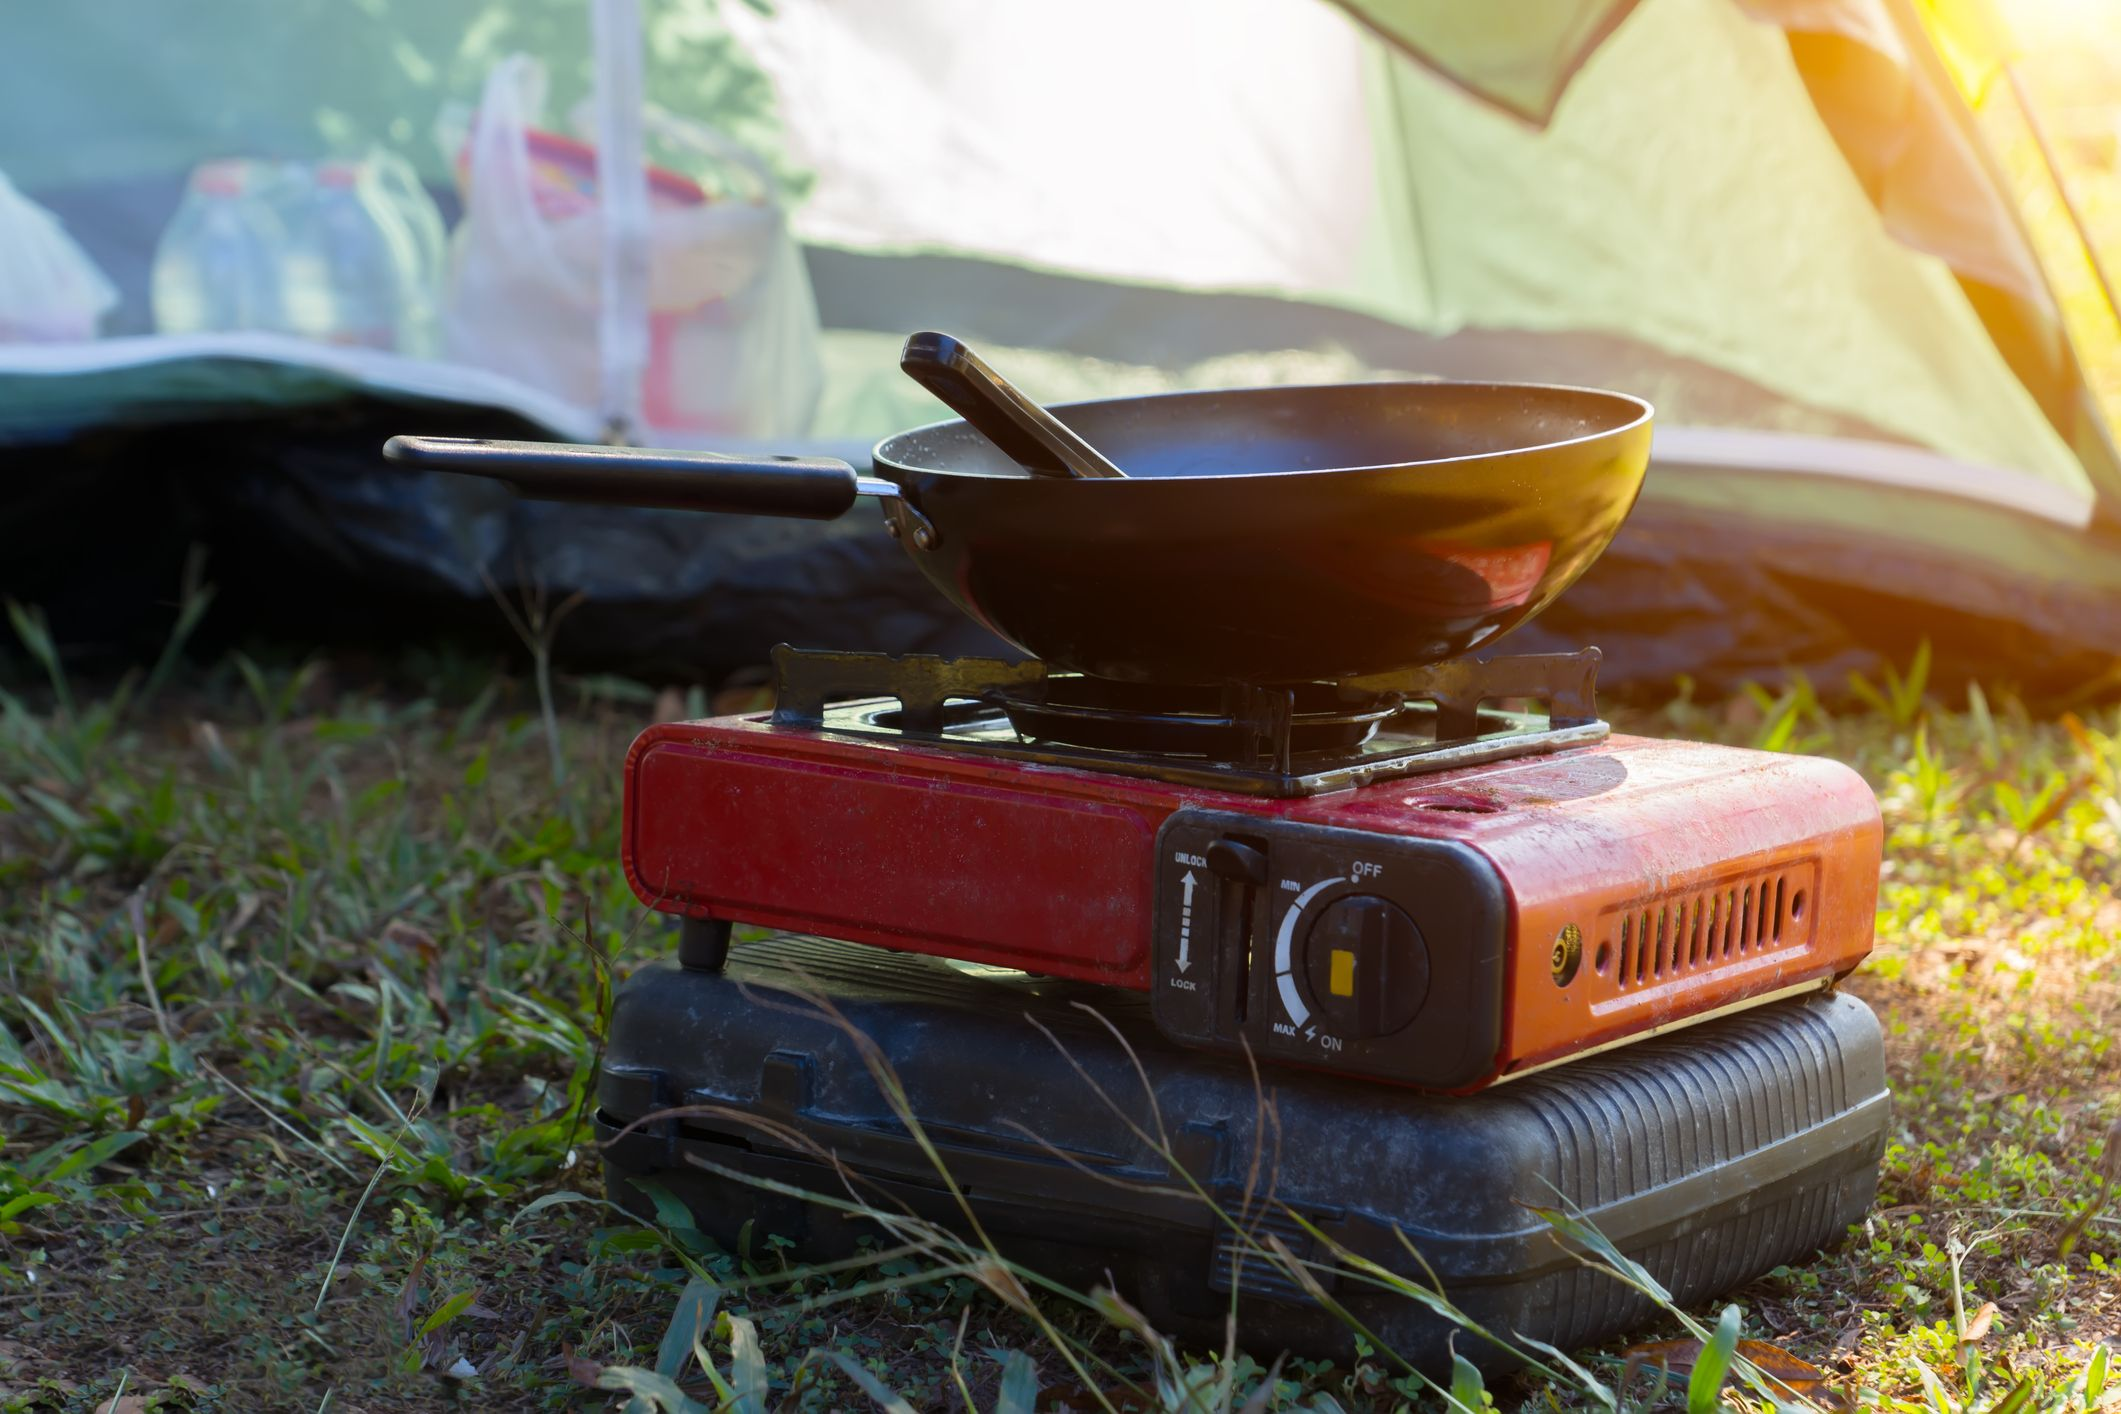 Portable gas stove and a frying pan in the camp with sunlight.